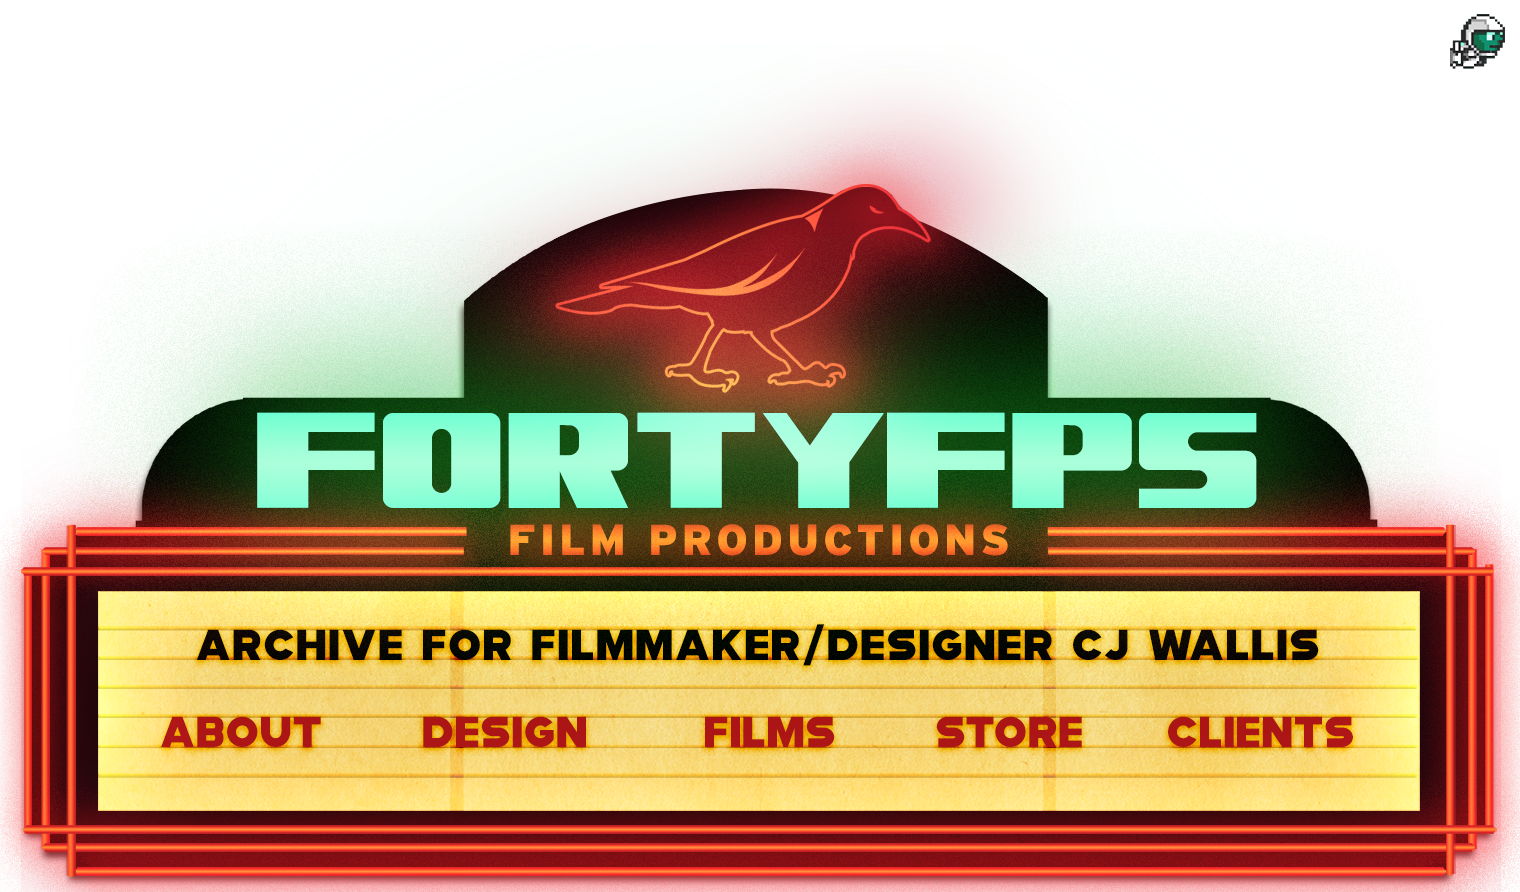 FORTYFPS PRODUCTIONS